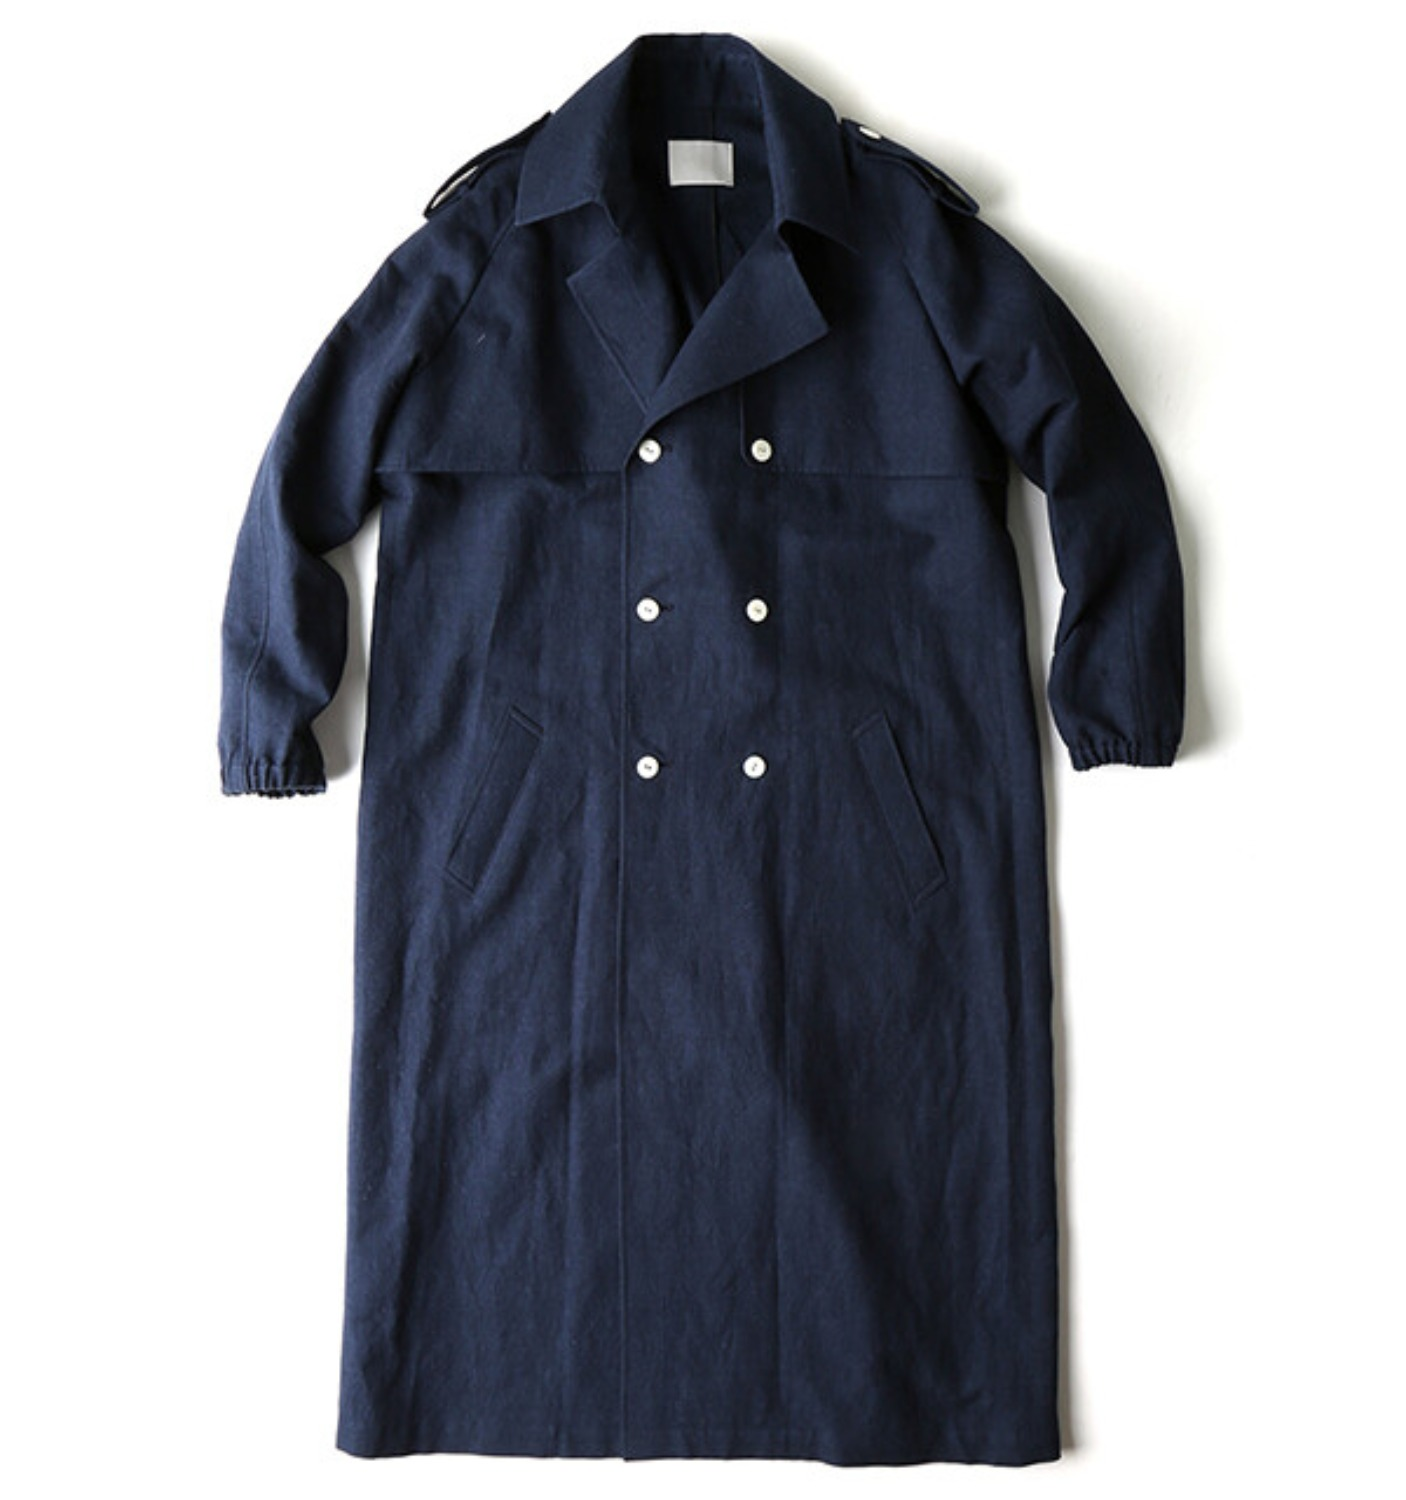 OVERSIZED TRENCH COAT INDIGO LINEN COTTON